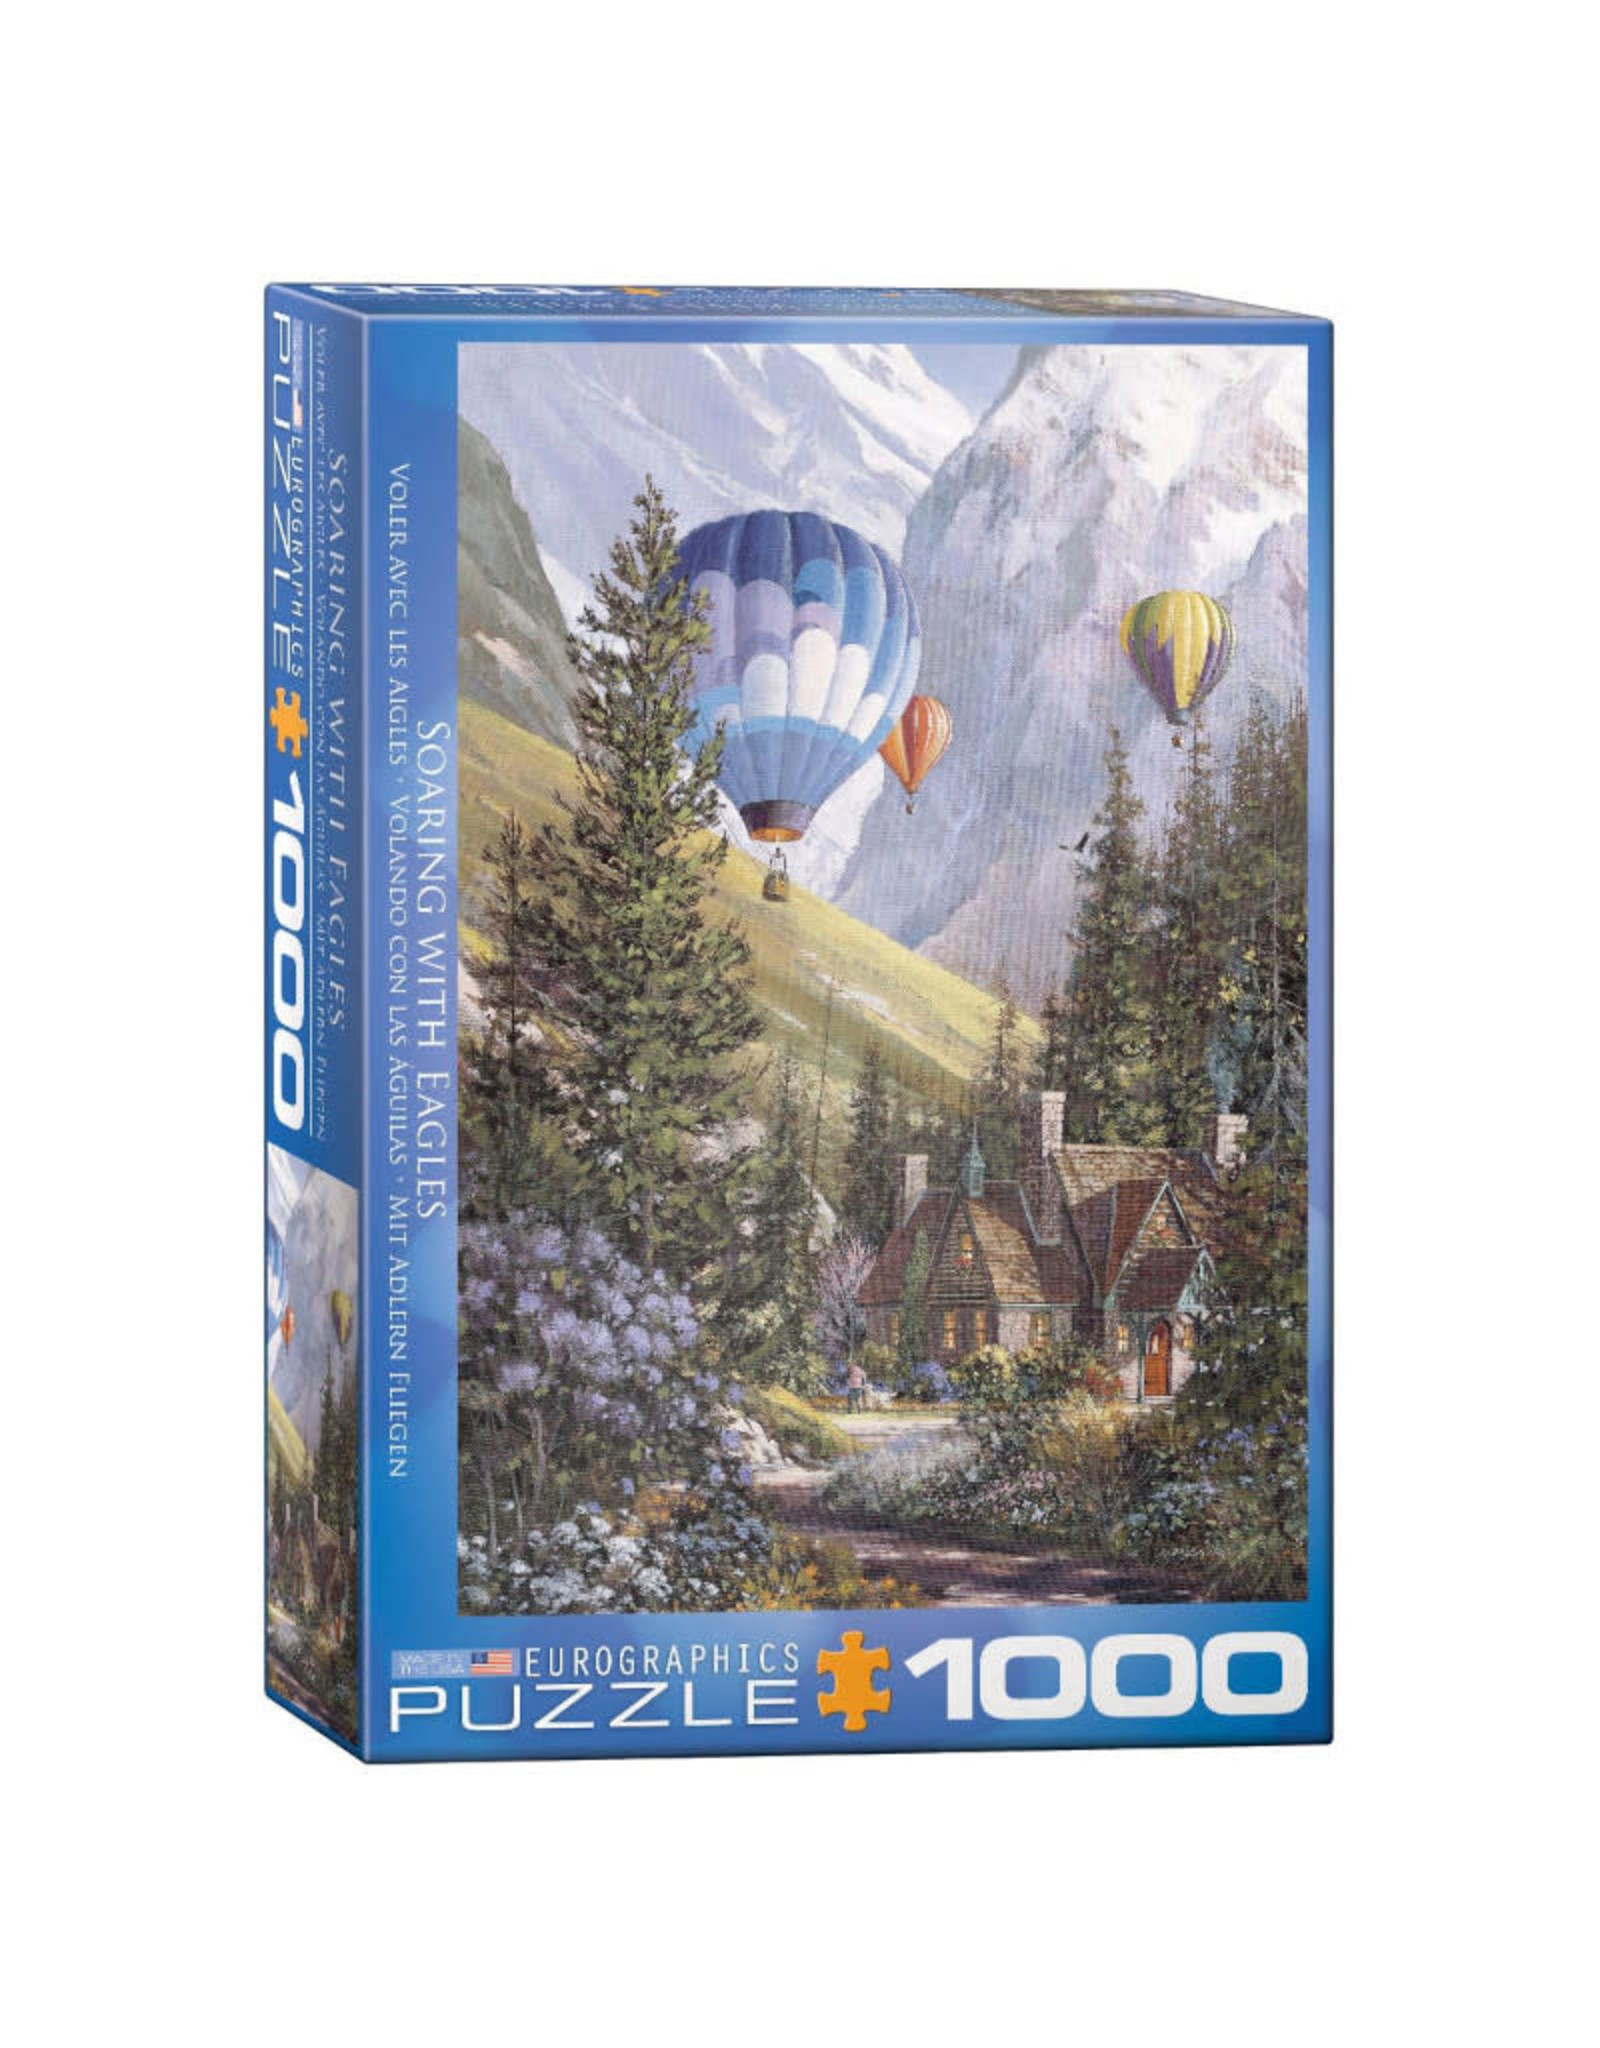 Eurographics Soaring with Eagles Puzzle 1000 PCS